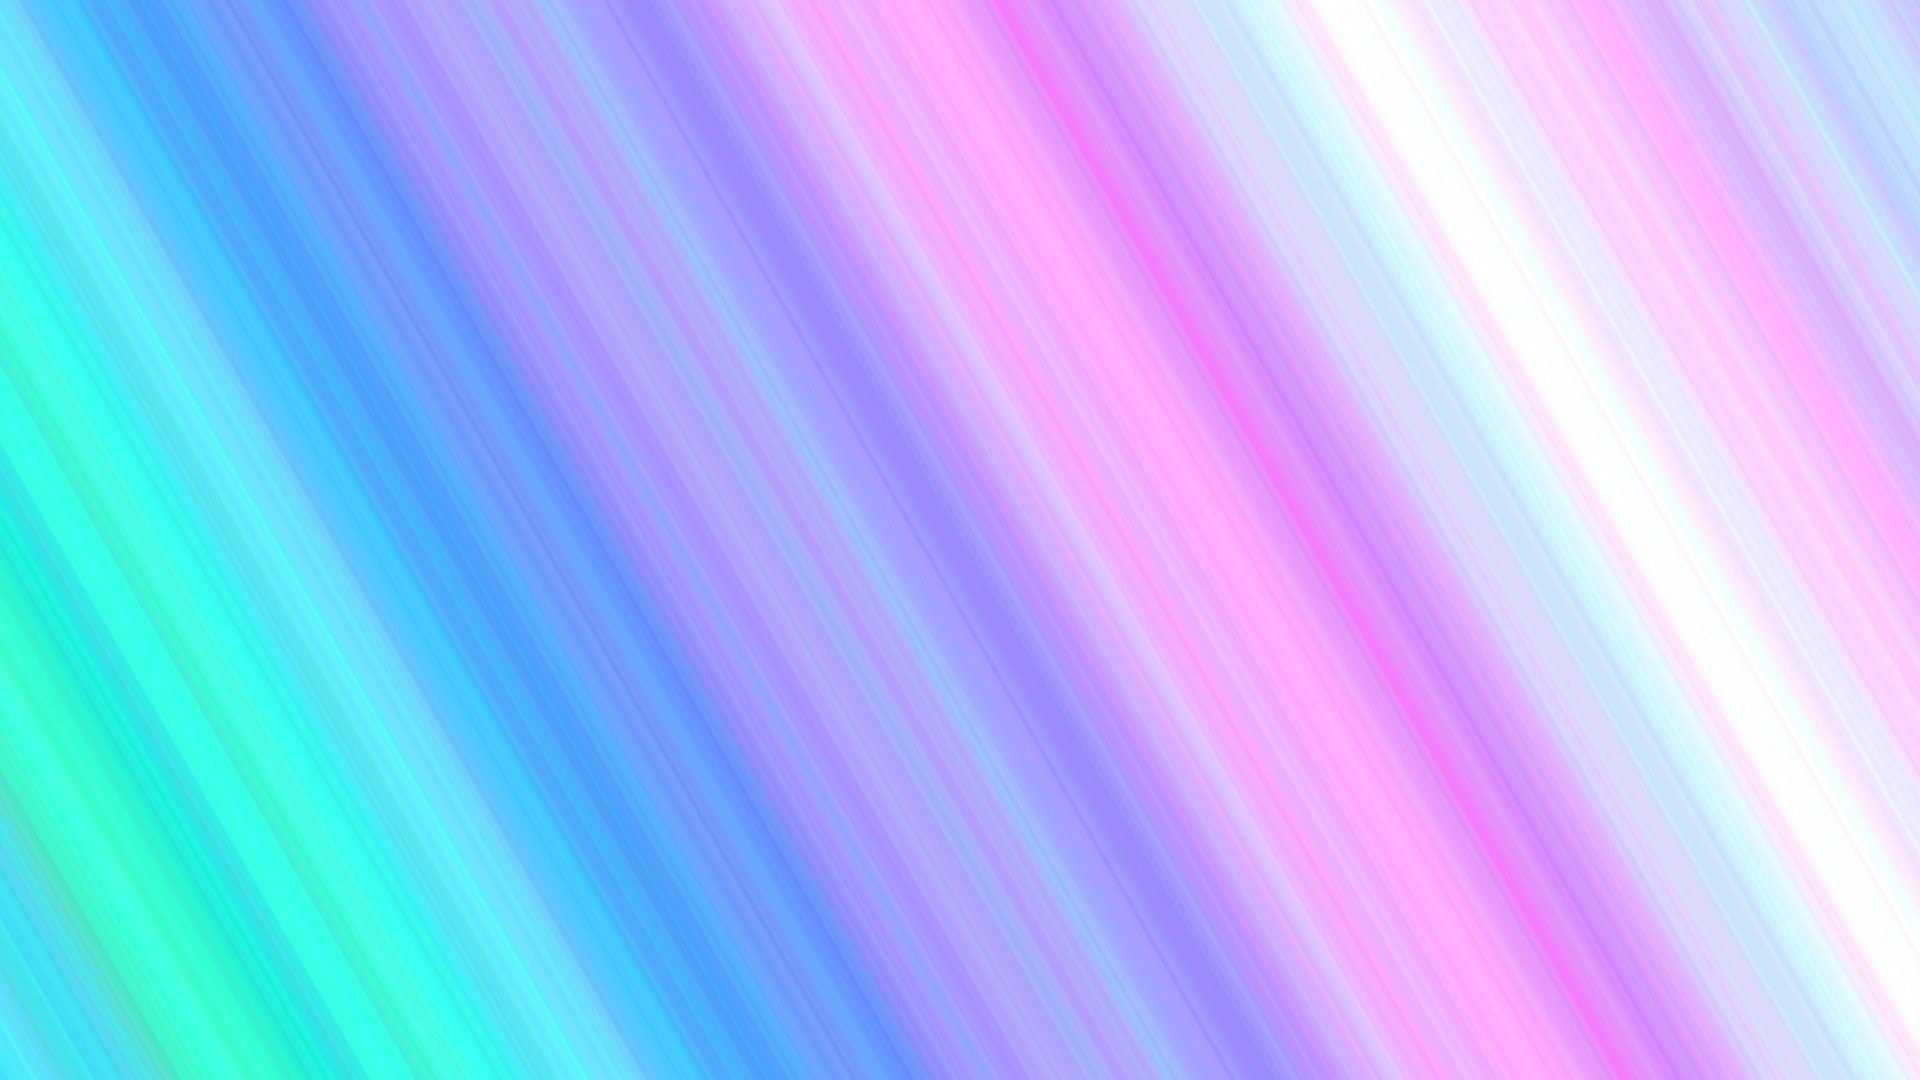 Black And White Striped Wallpaper Pretty Pink And Purple Background 183 ①